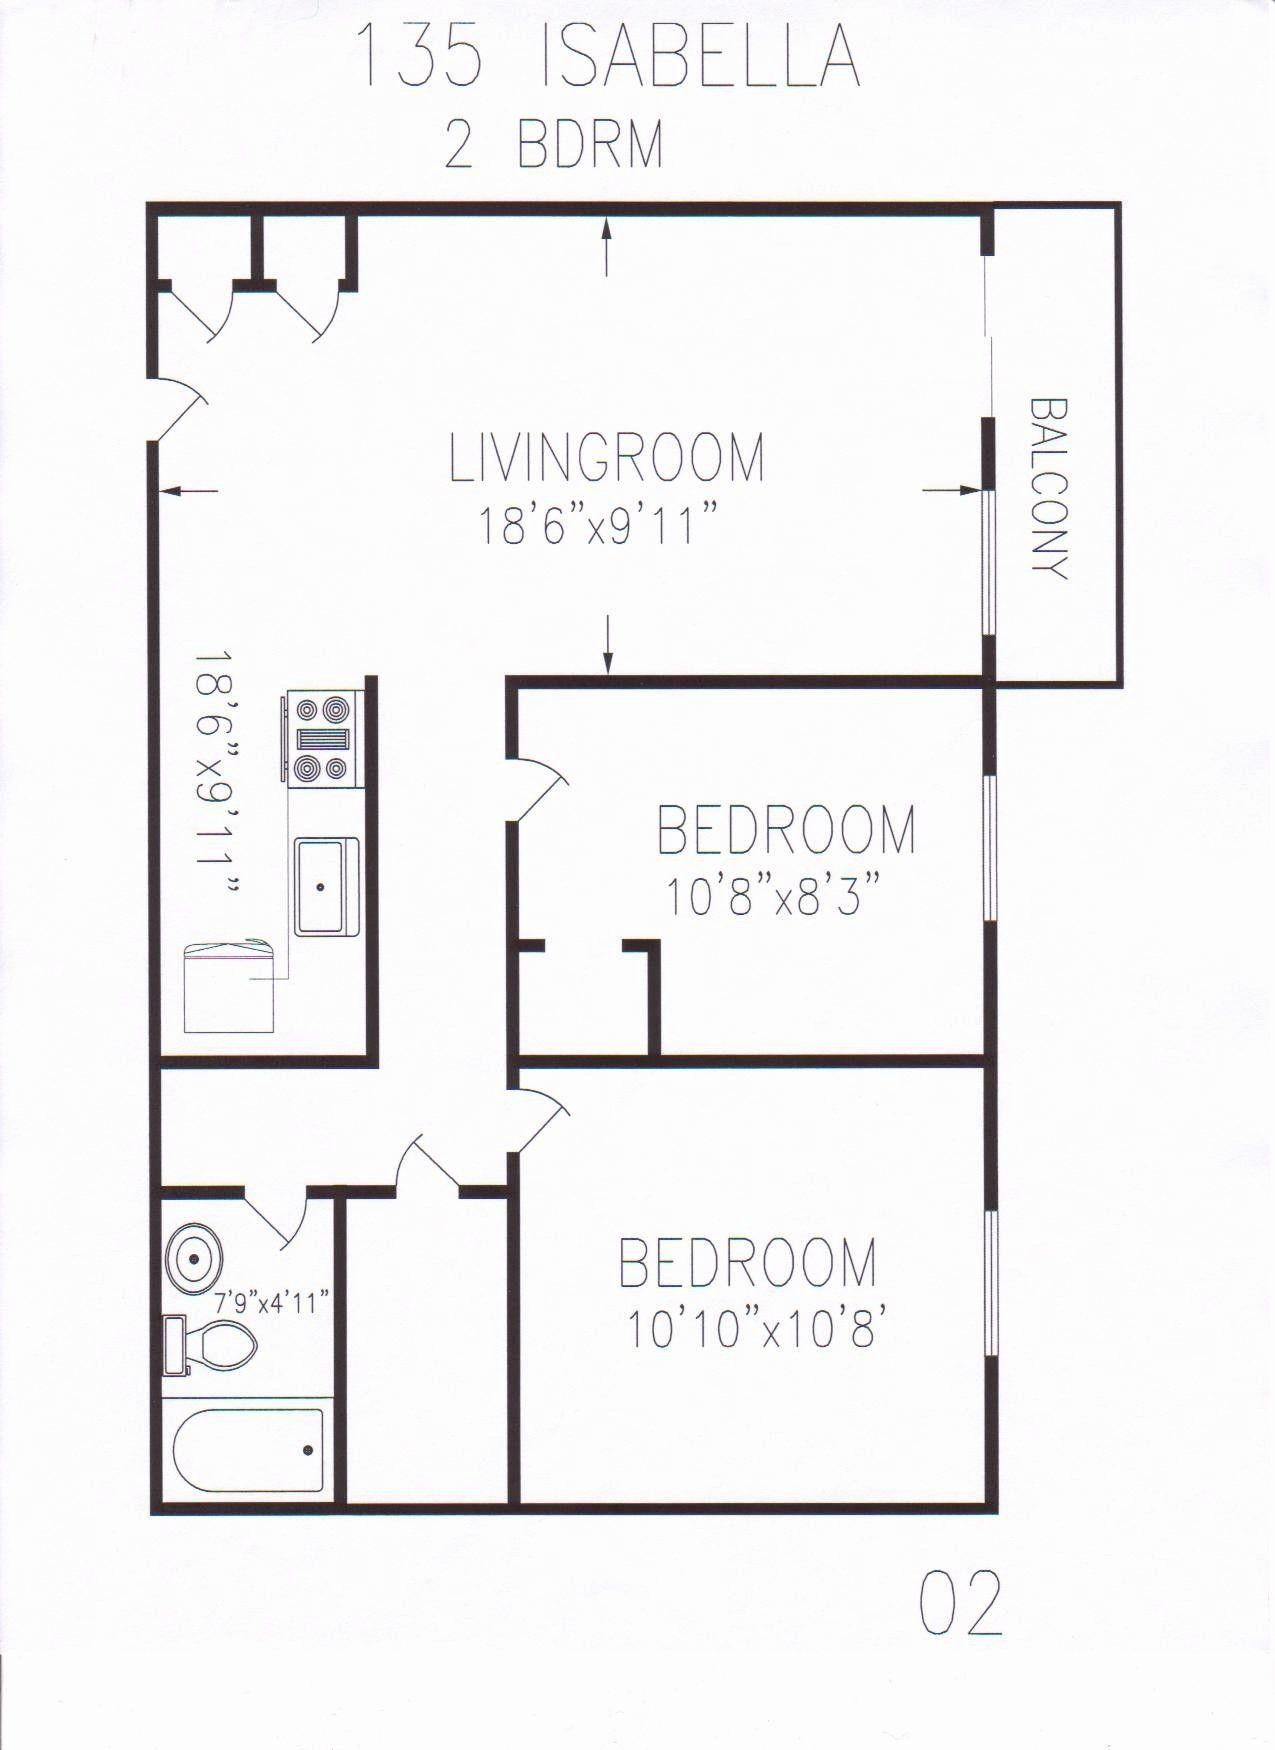 500 Square Feet House Plans Fresh 5000 Square Foot House Floor Plans Small House Plans House Plans One Storey House